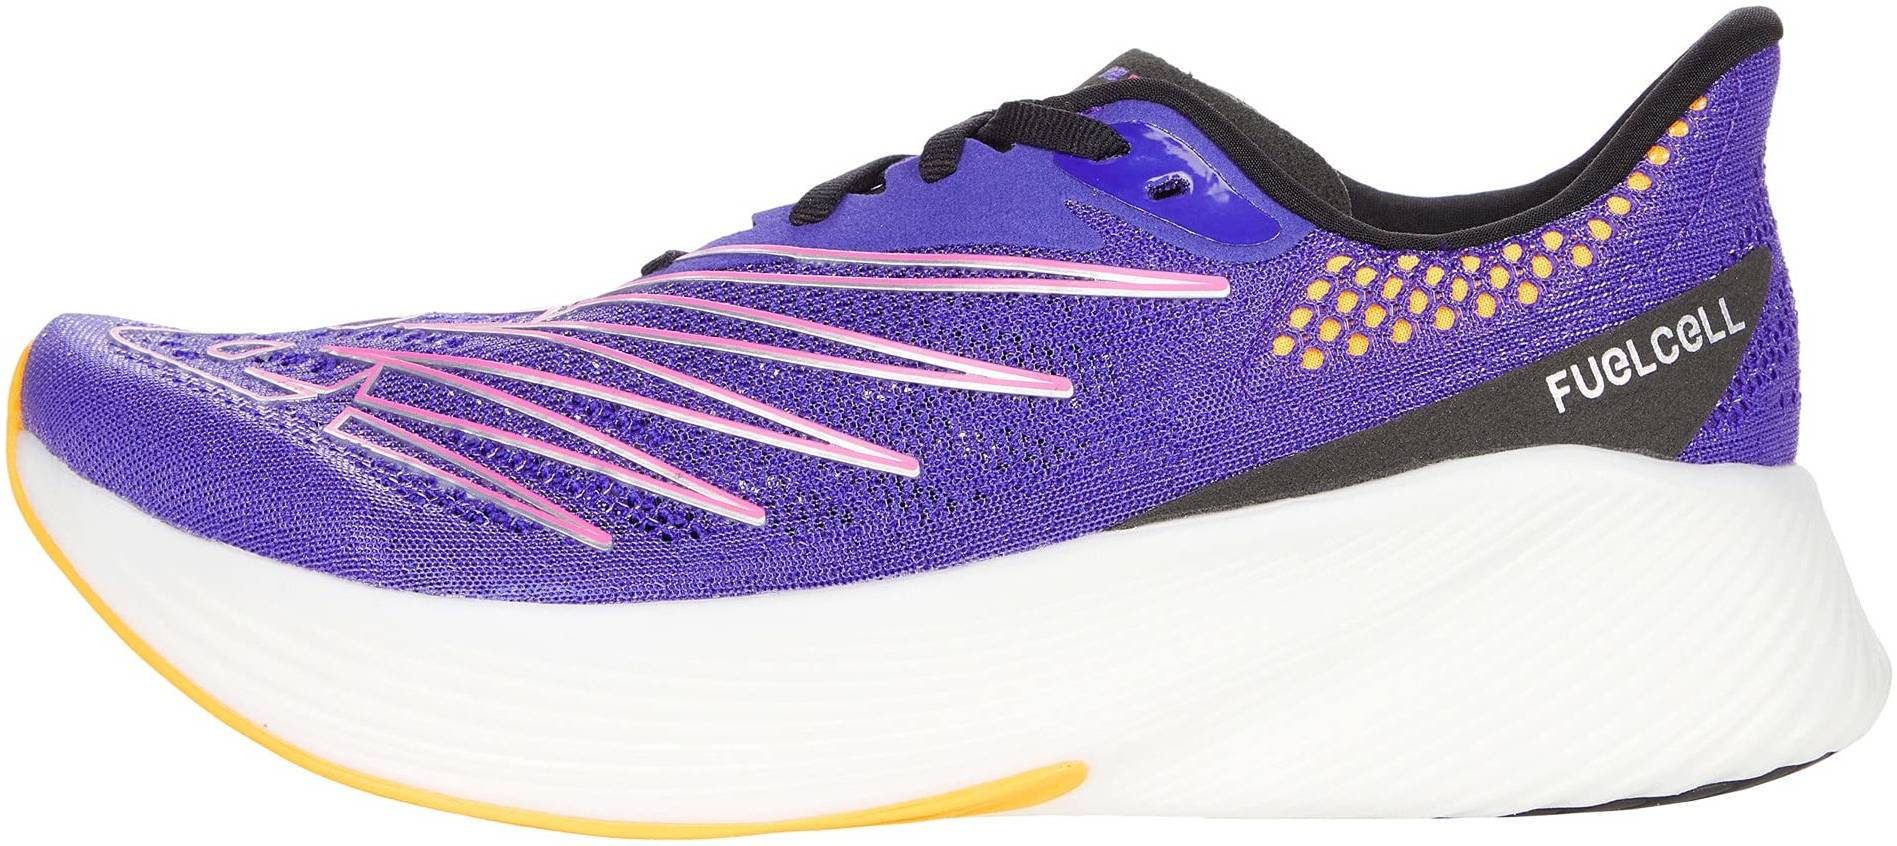 New Balance FuelCell RC Elite v2 - Lab Review 2021 - From $225 ...